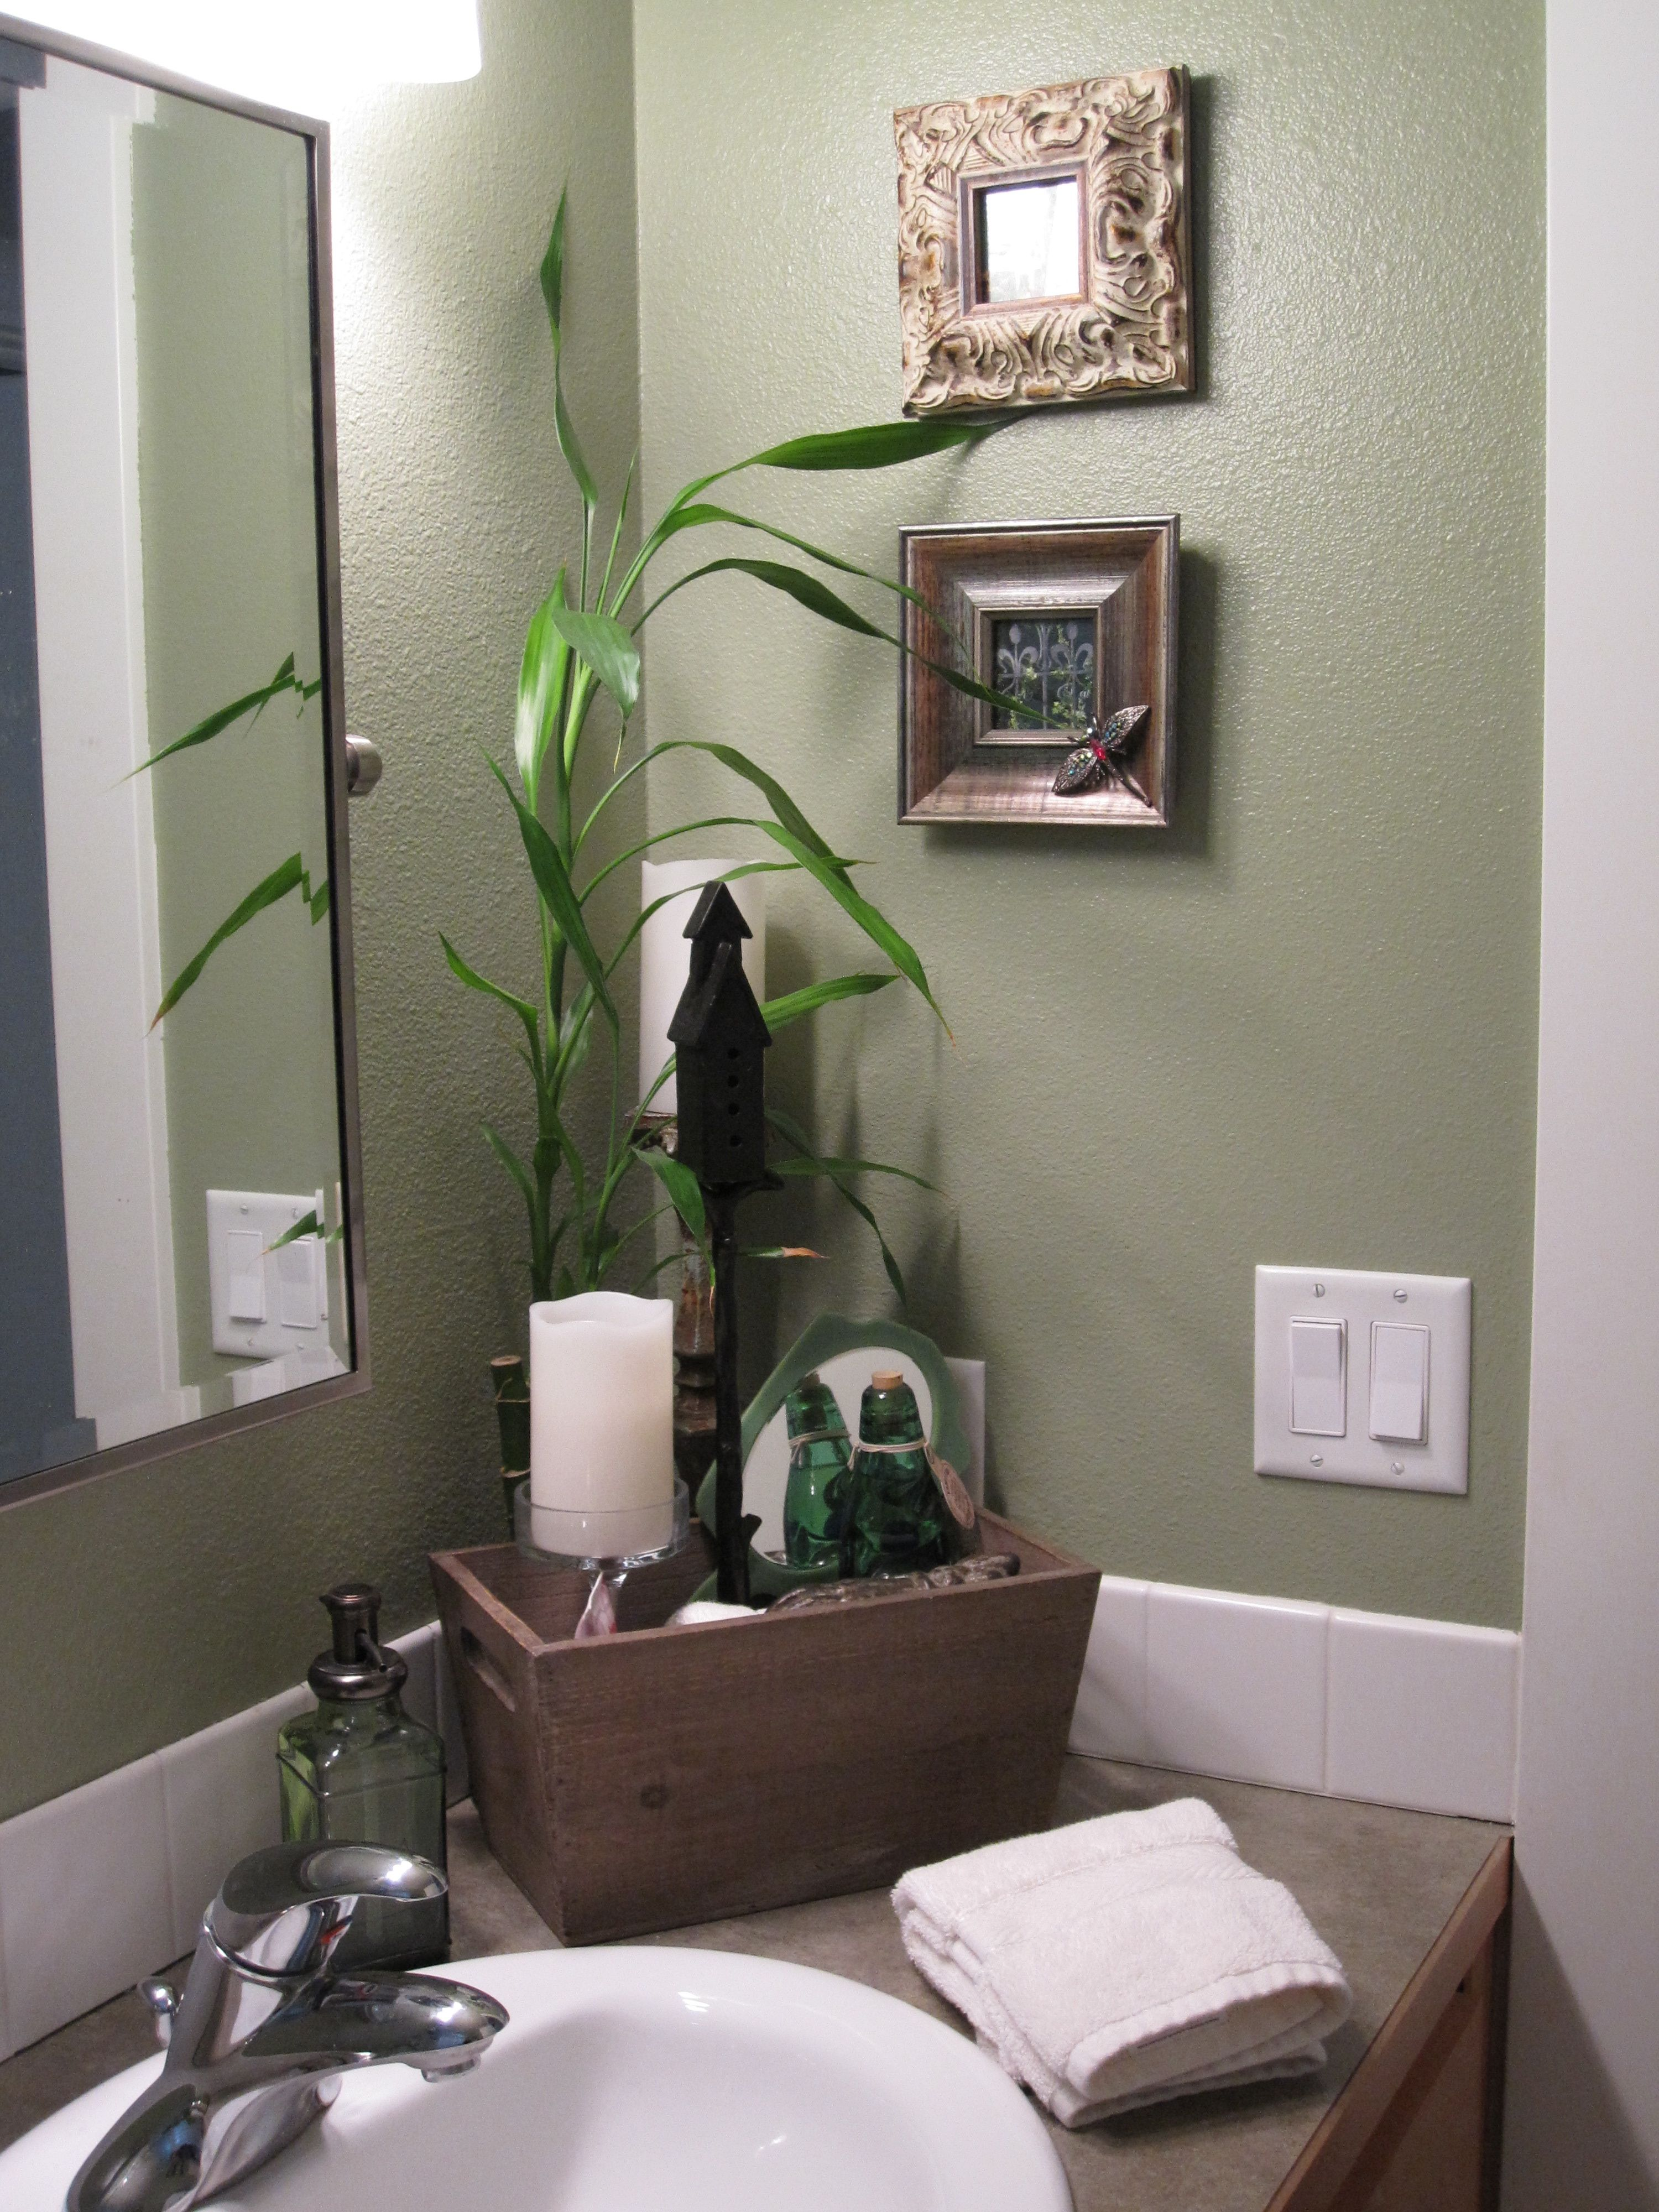 Olive Green Wall Decor Spa Like Feel In The Guest Bathroom The Fresh Green Color